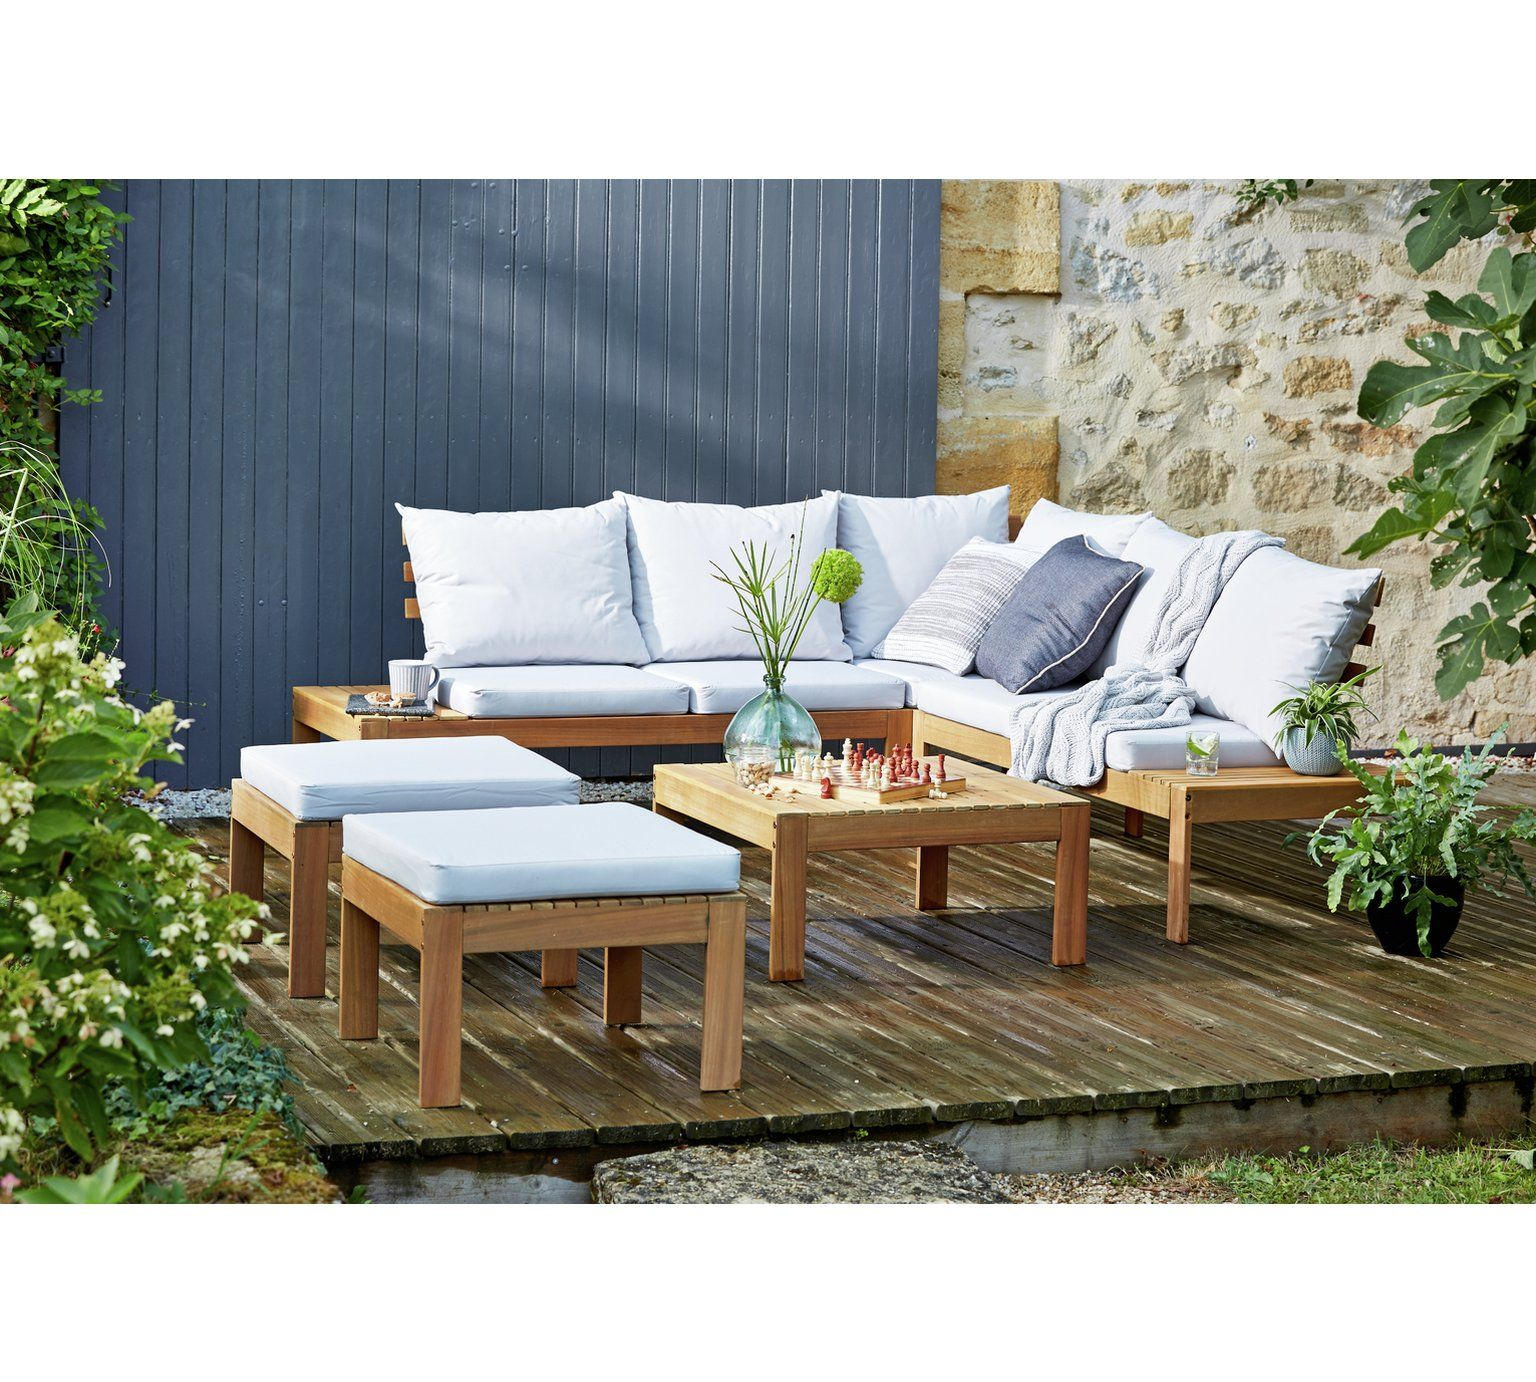 Buy Argos Home 6 Seater Wooden Corner Sofa Set Patio Sets Argos Corner Sofa Set Corner Sofa Garden Garden Sofa Set